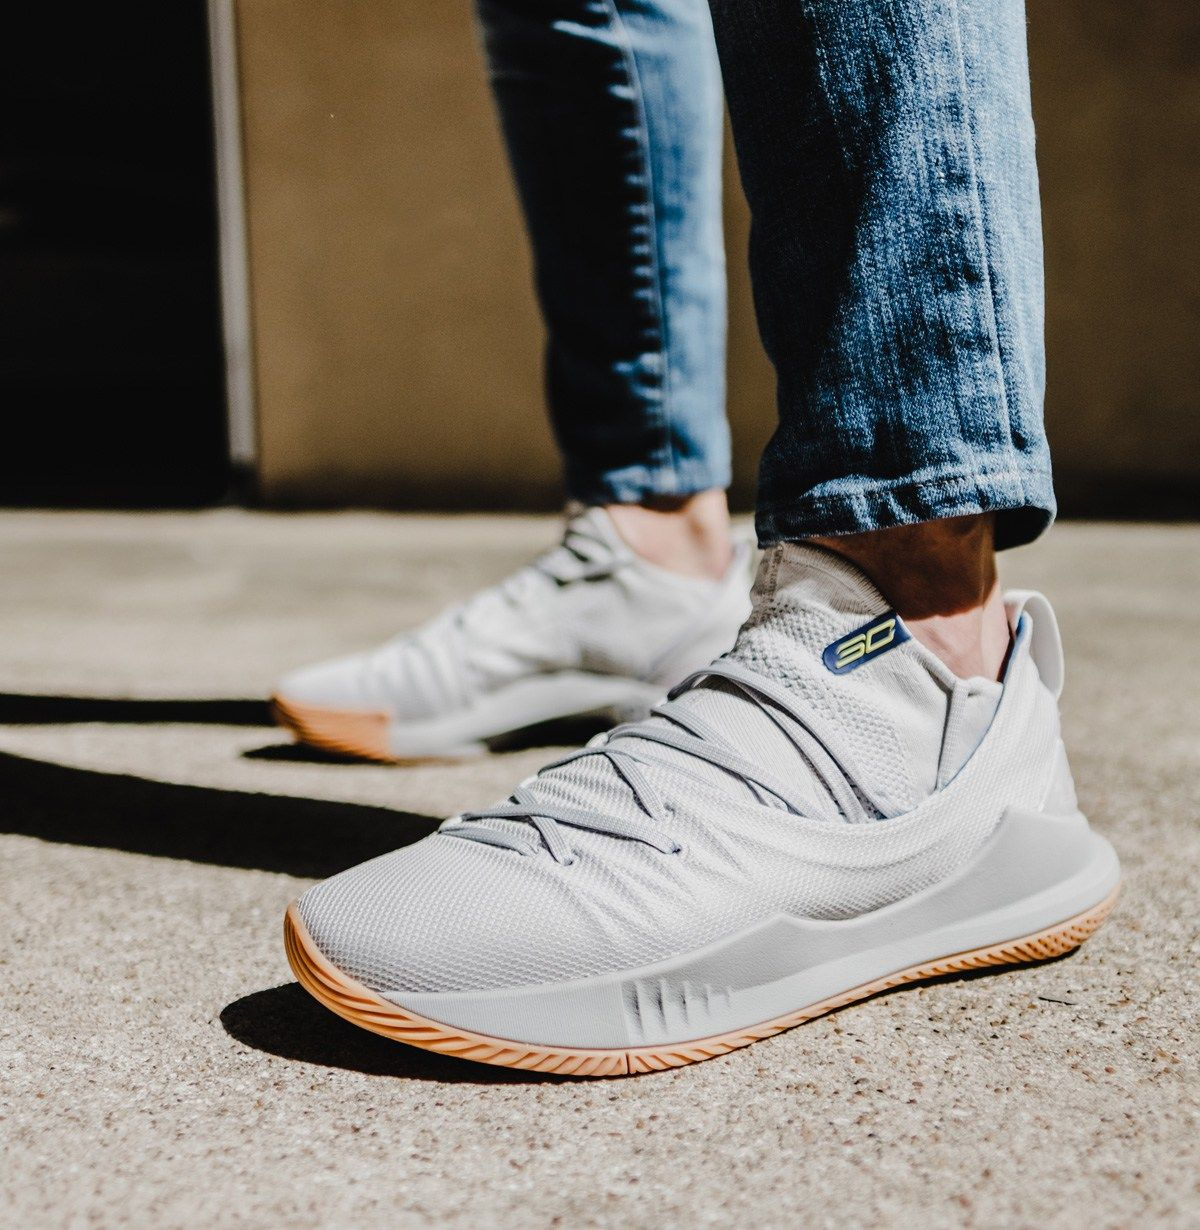 The Under Armour Curry 5 In Grey